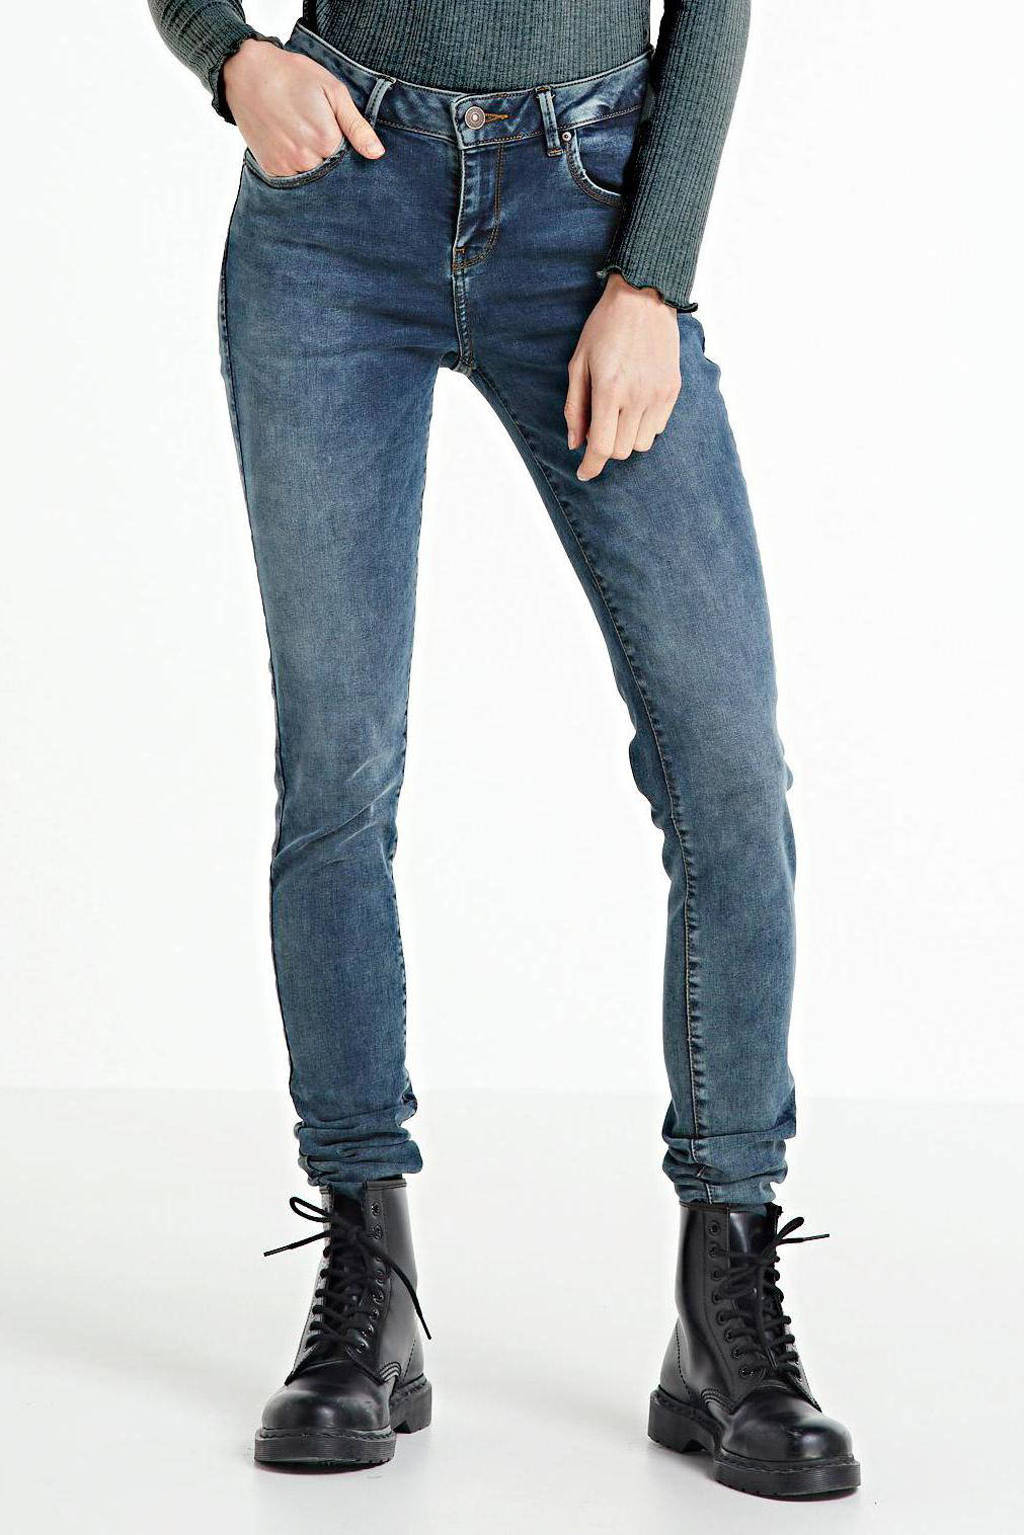 LTB skinny jeans Daizy nome wash, Nome wash